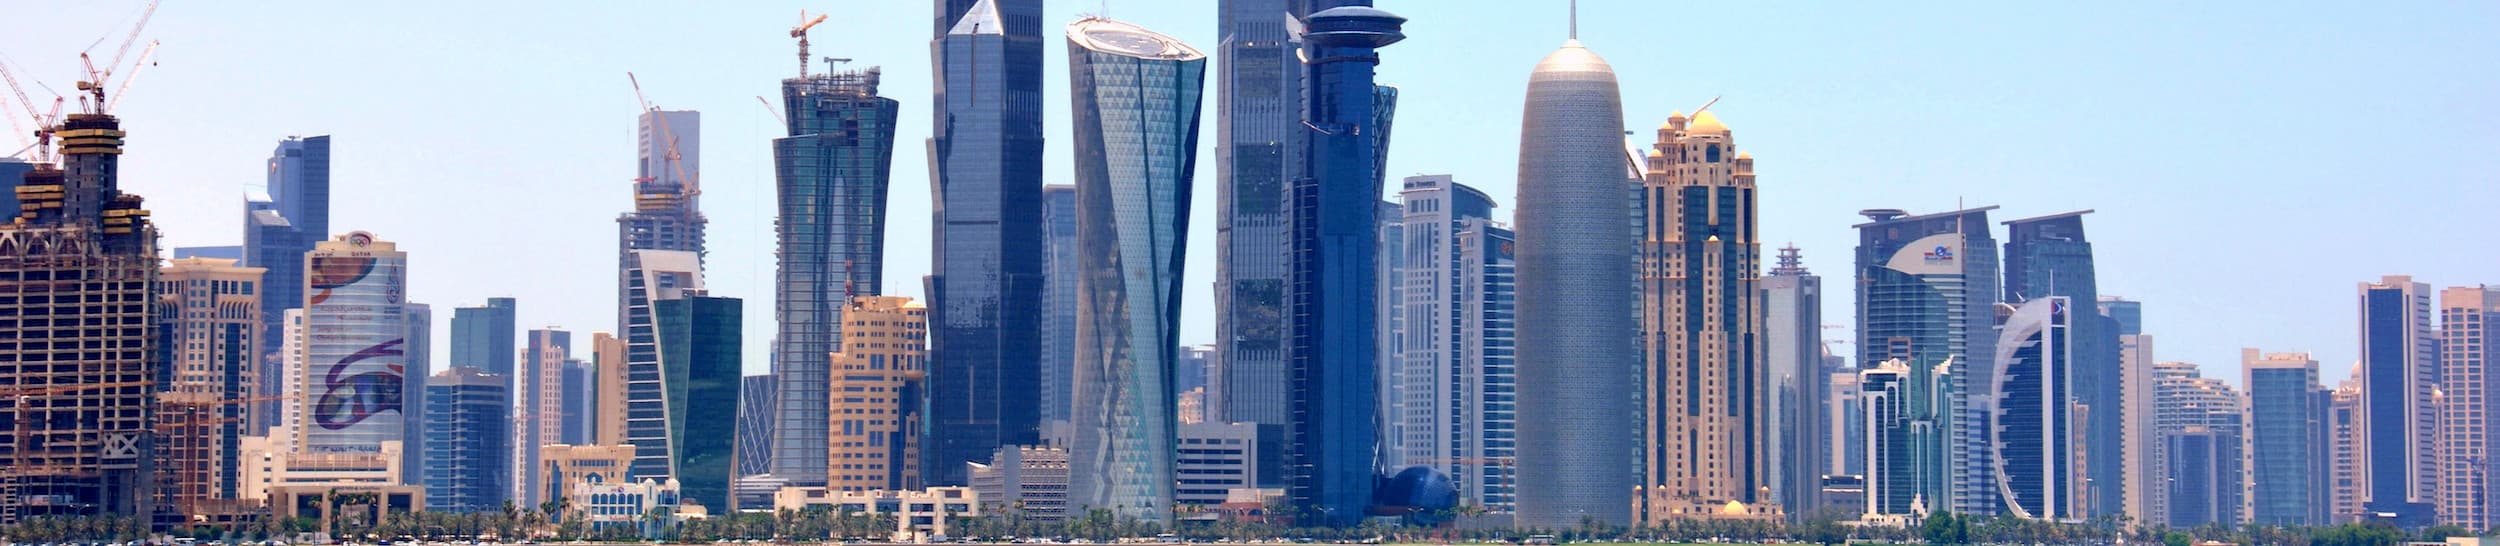 Jobs and salaries in Doha, Qatar - Teleport Cities